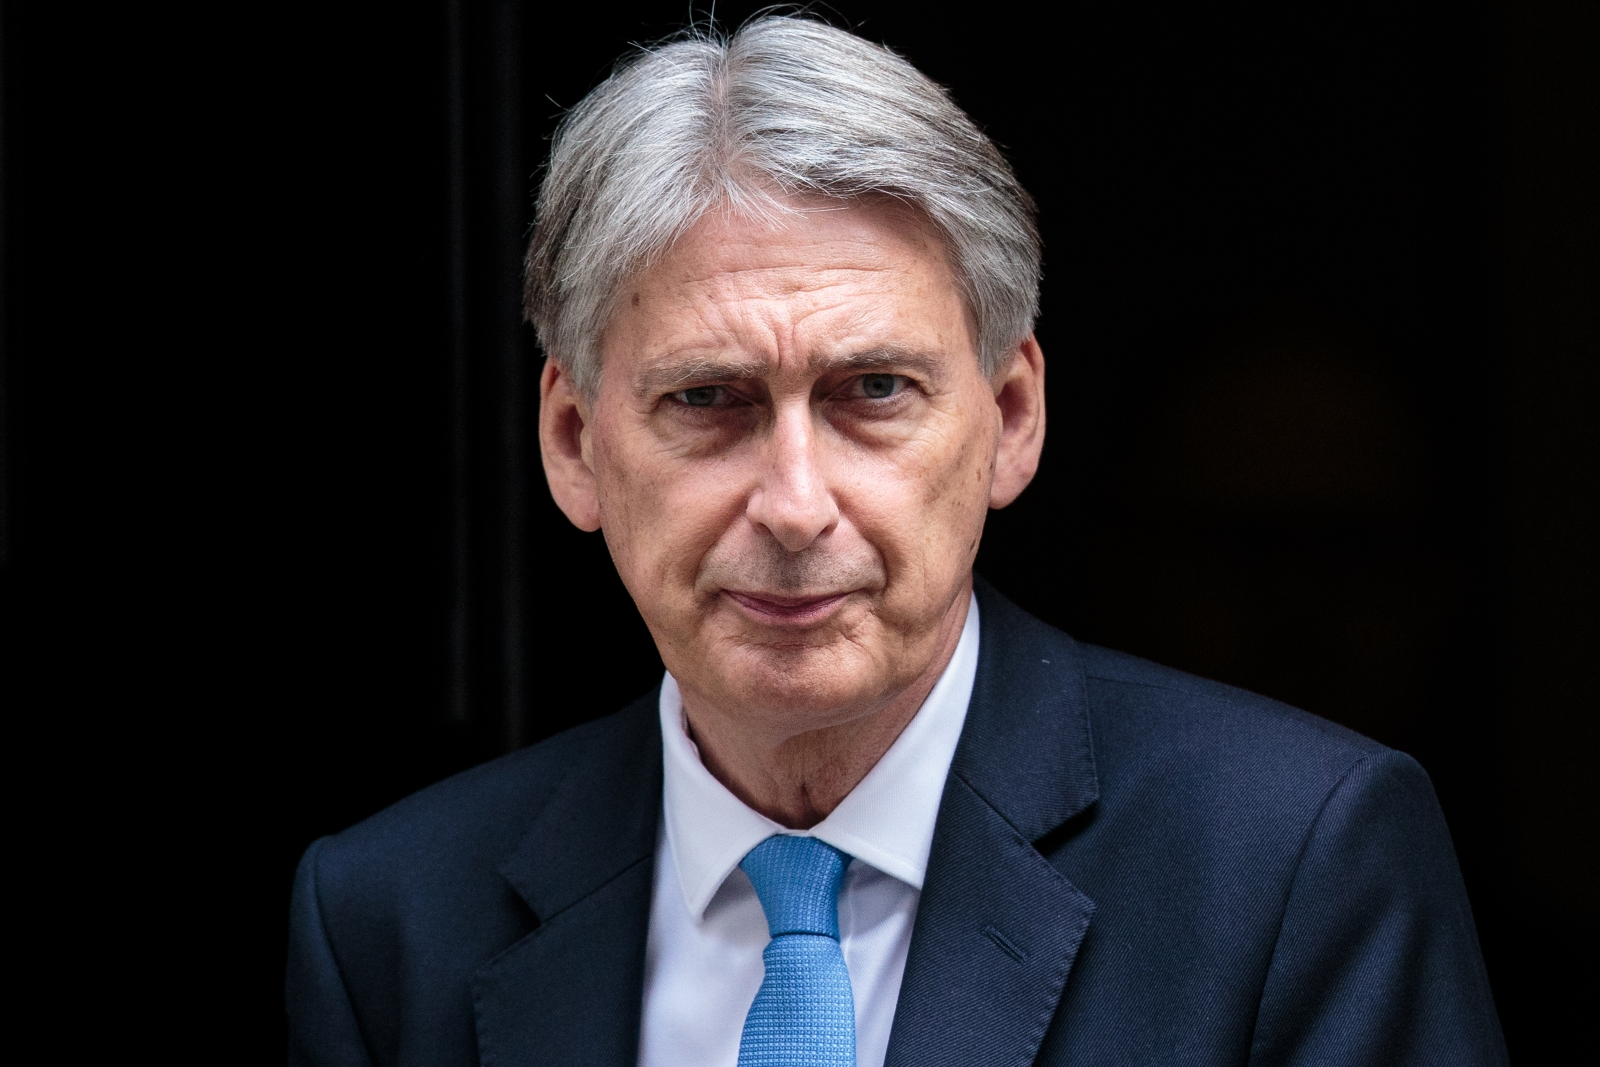 'I will not spend billions to prepare for hard Brexit' says UK chancellor Philip Hammond